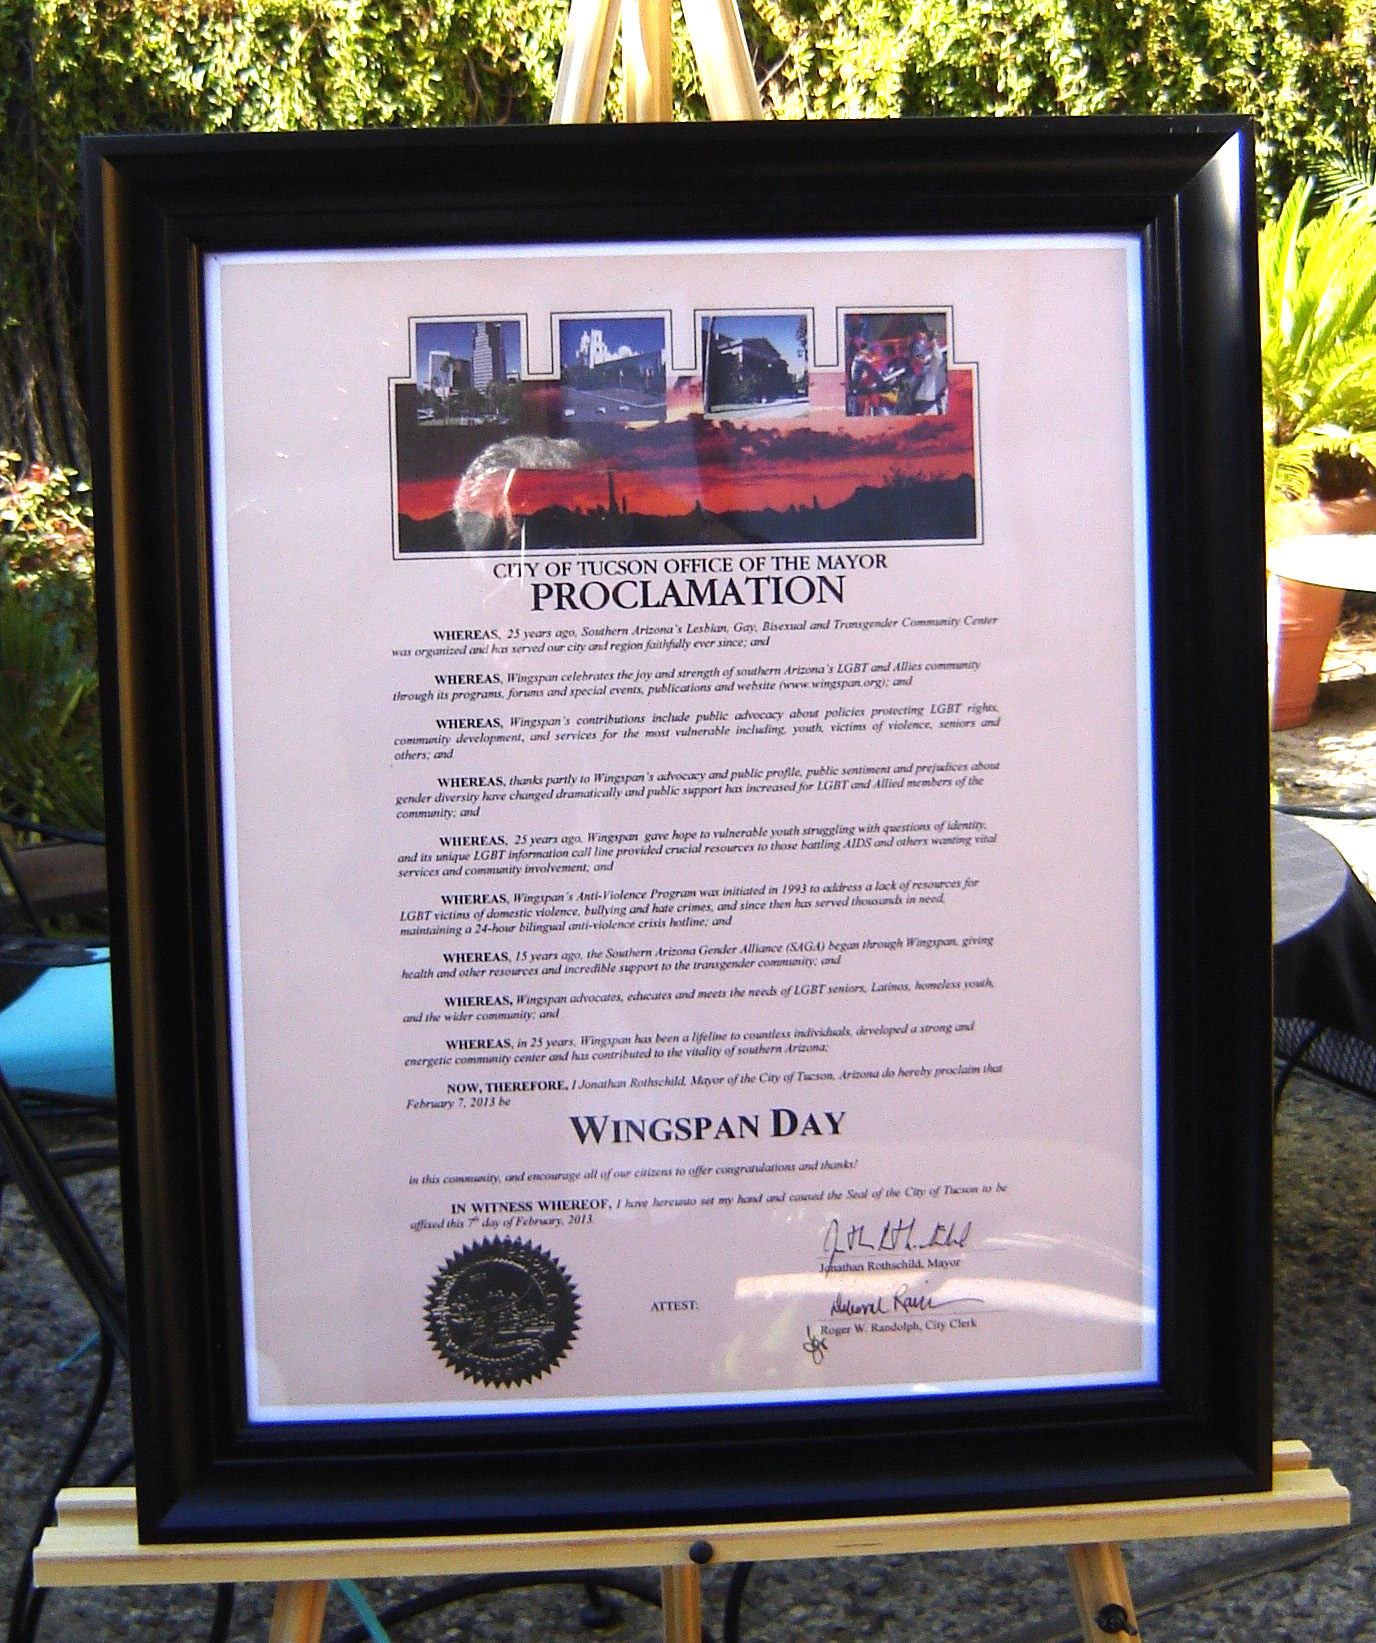 Proclamation of Wingspan Day, February 7, 2013